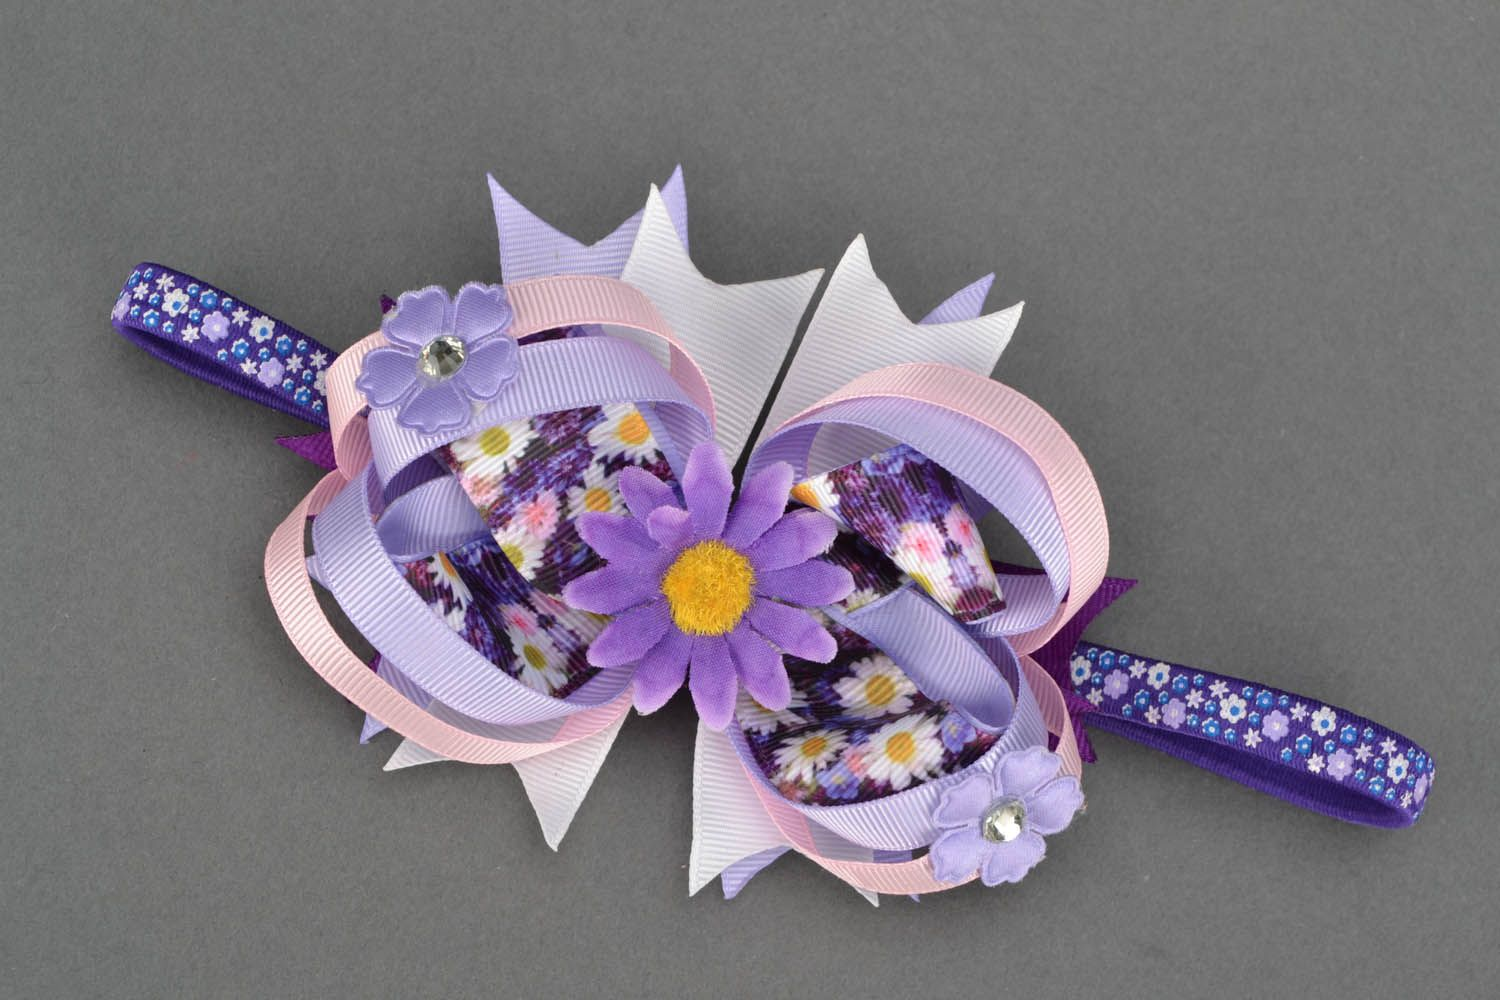 Homemade headband with lilac flowers photo 1